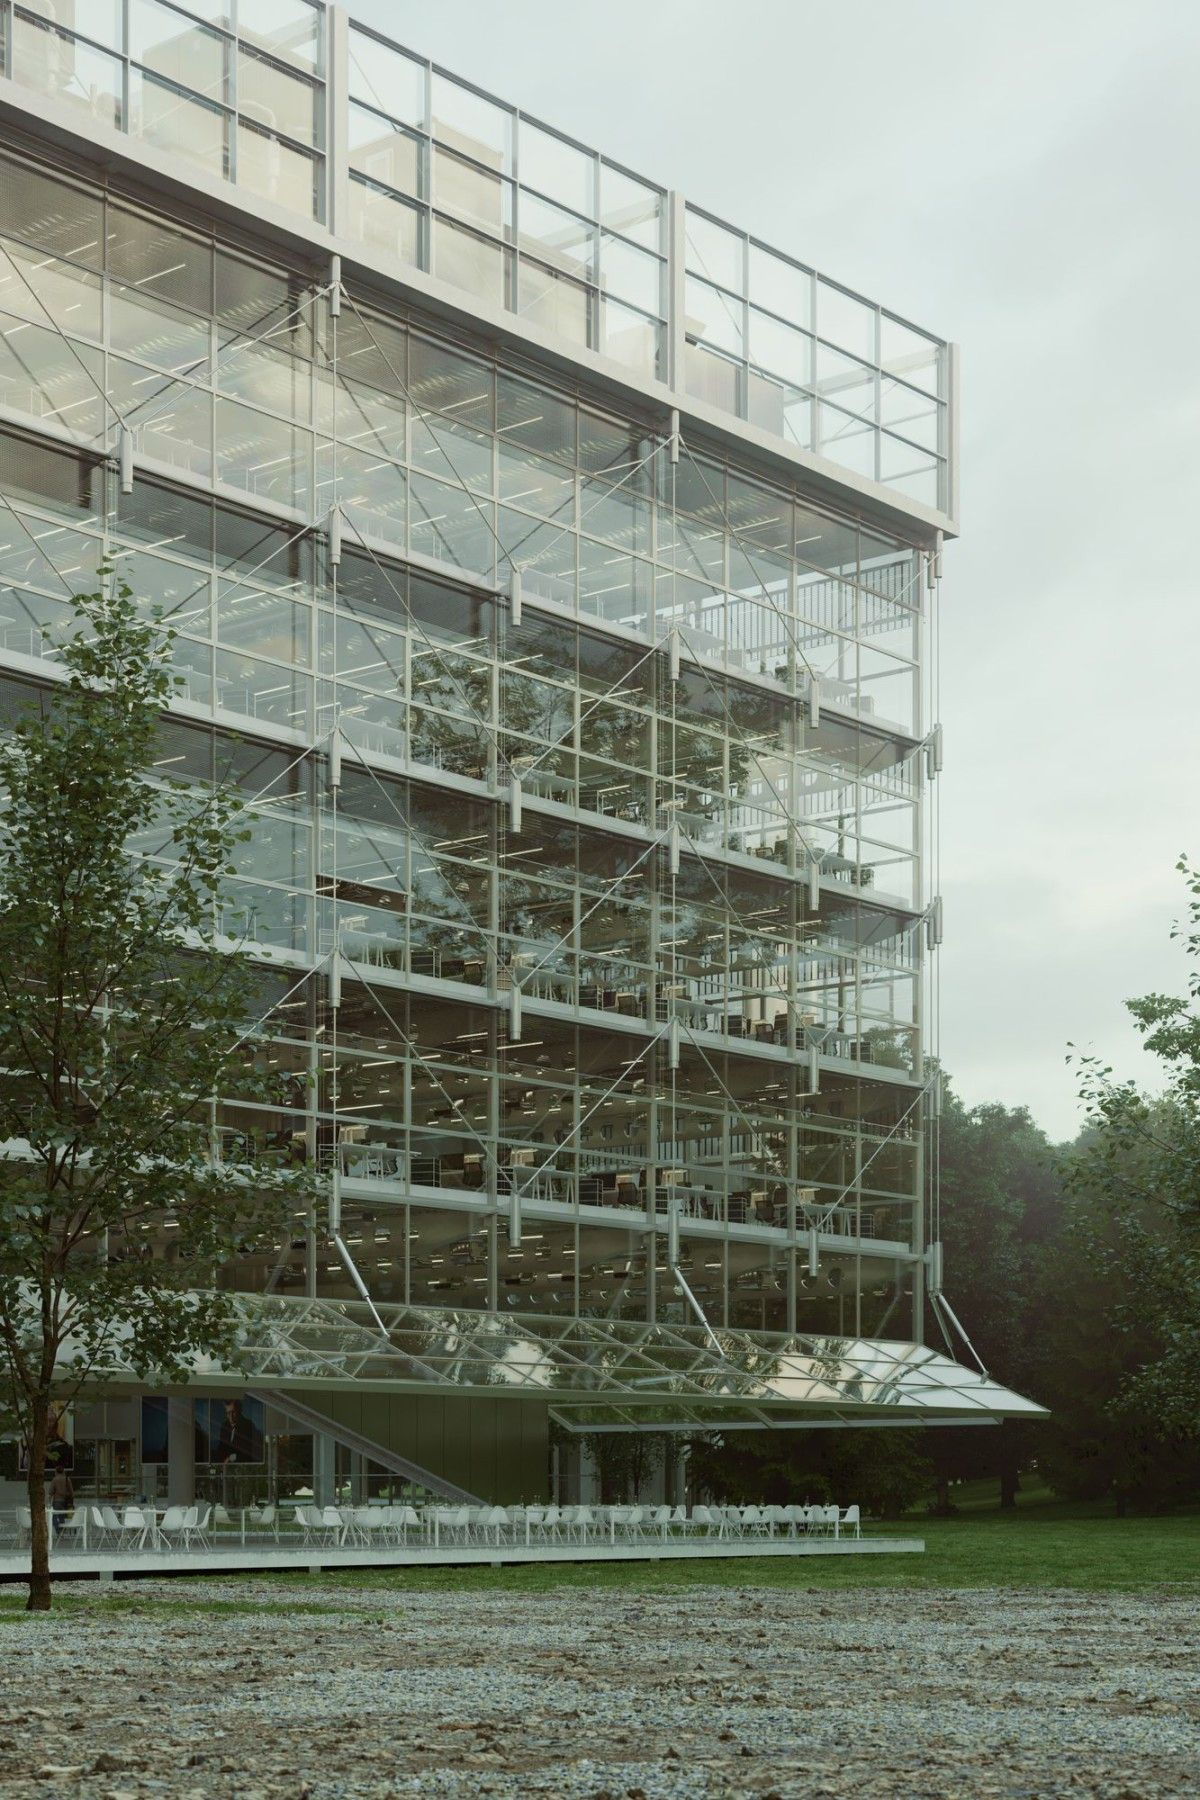 Möbeldesign Winterthur Bruther Baukunst New Zhaw Laboratory Buildings Winterthur